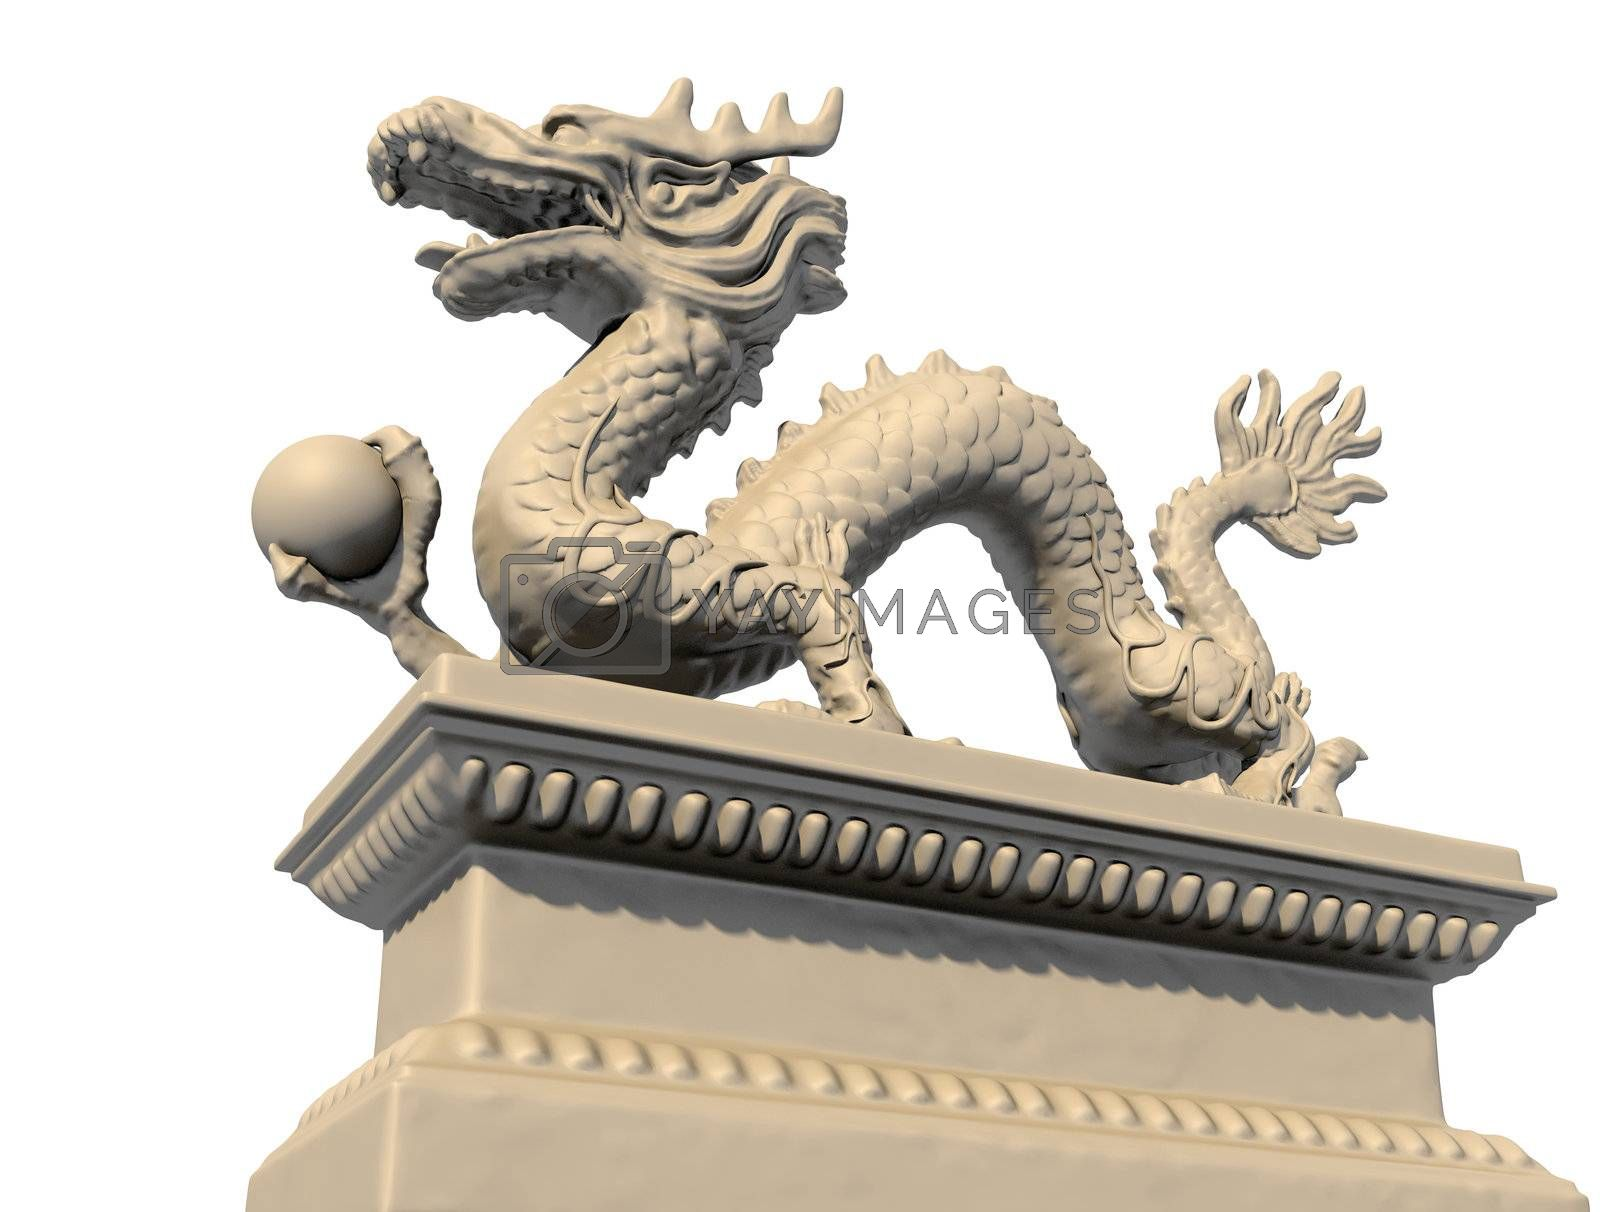 White Chinese dragon statue holding a ball in his claws, isolated against a white background. Bottom view 3D image.